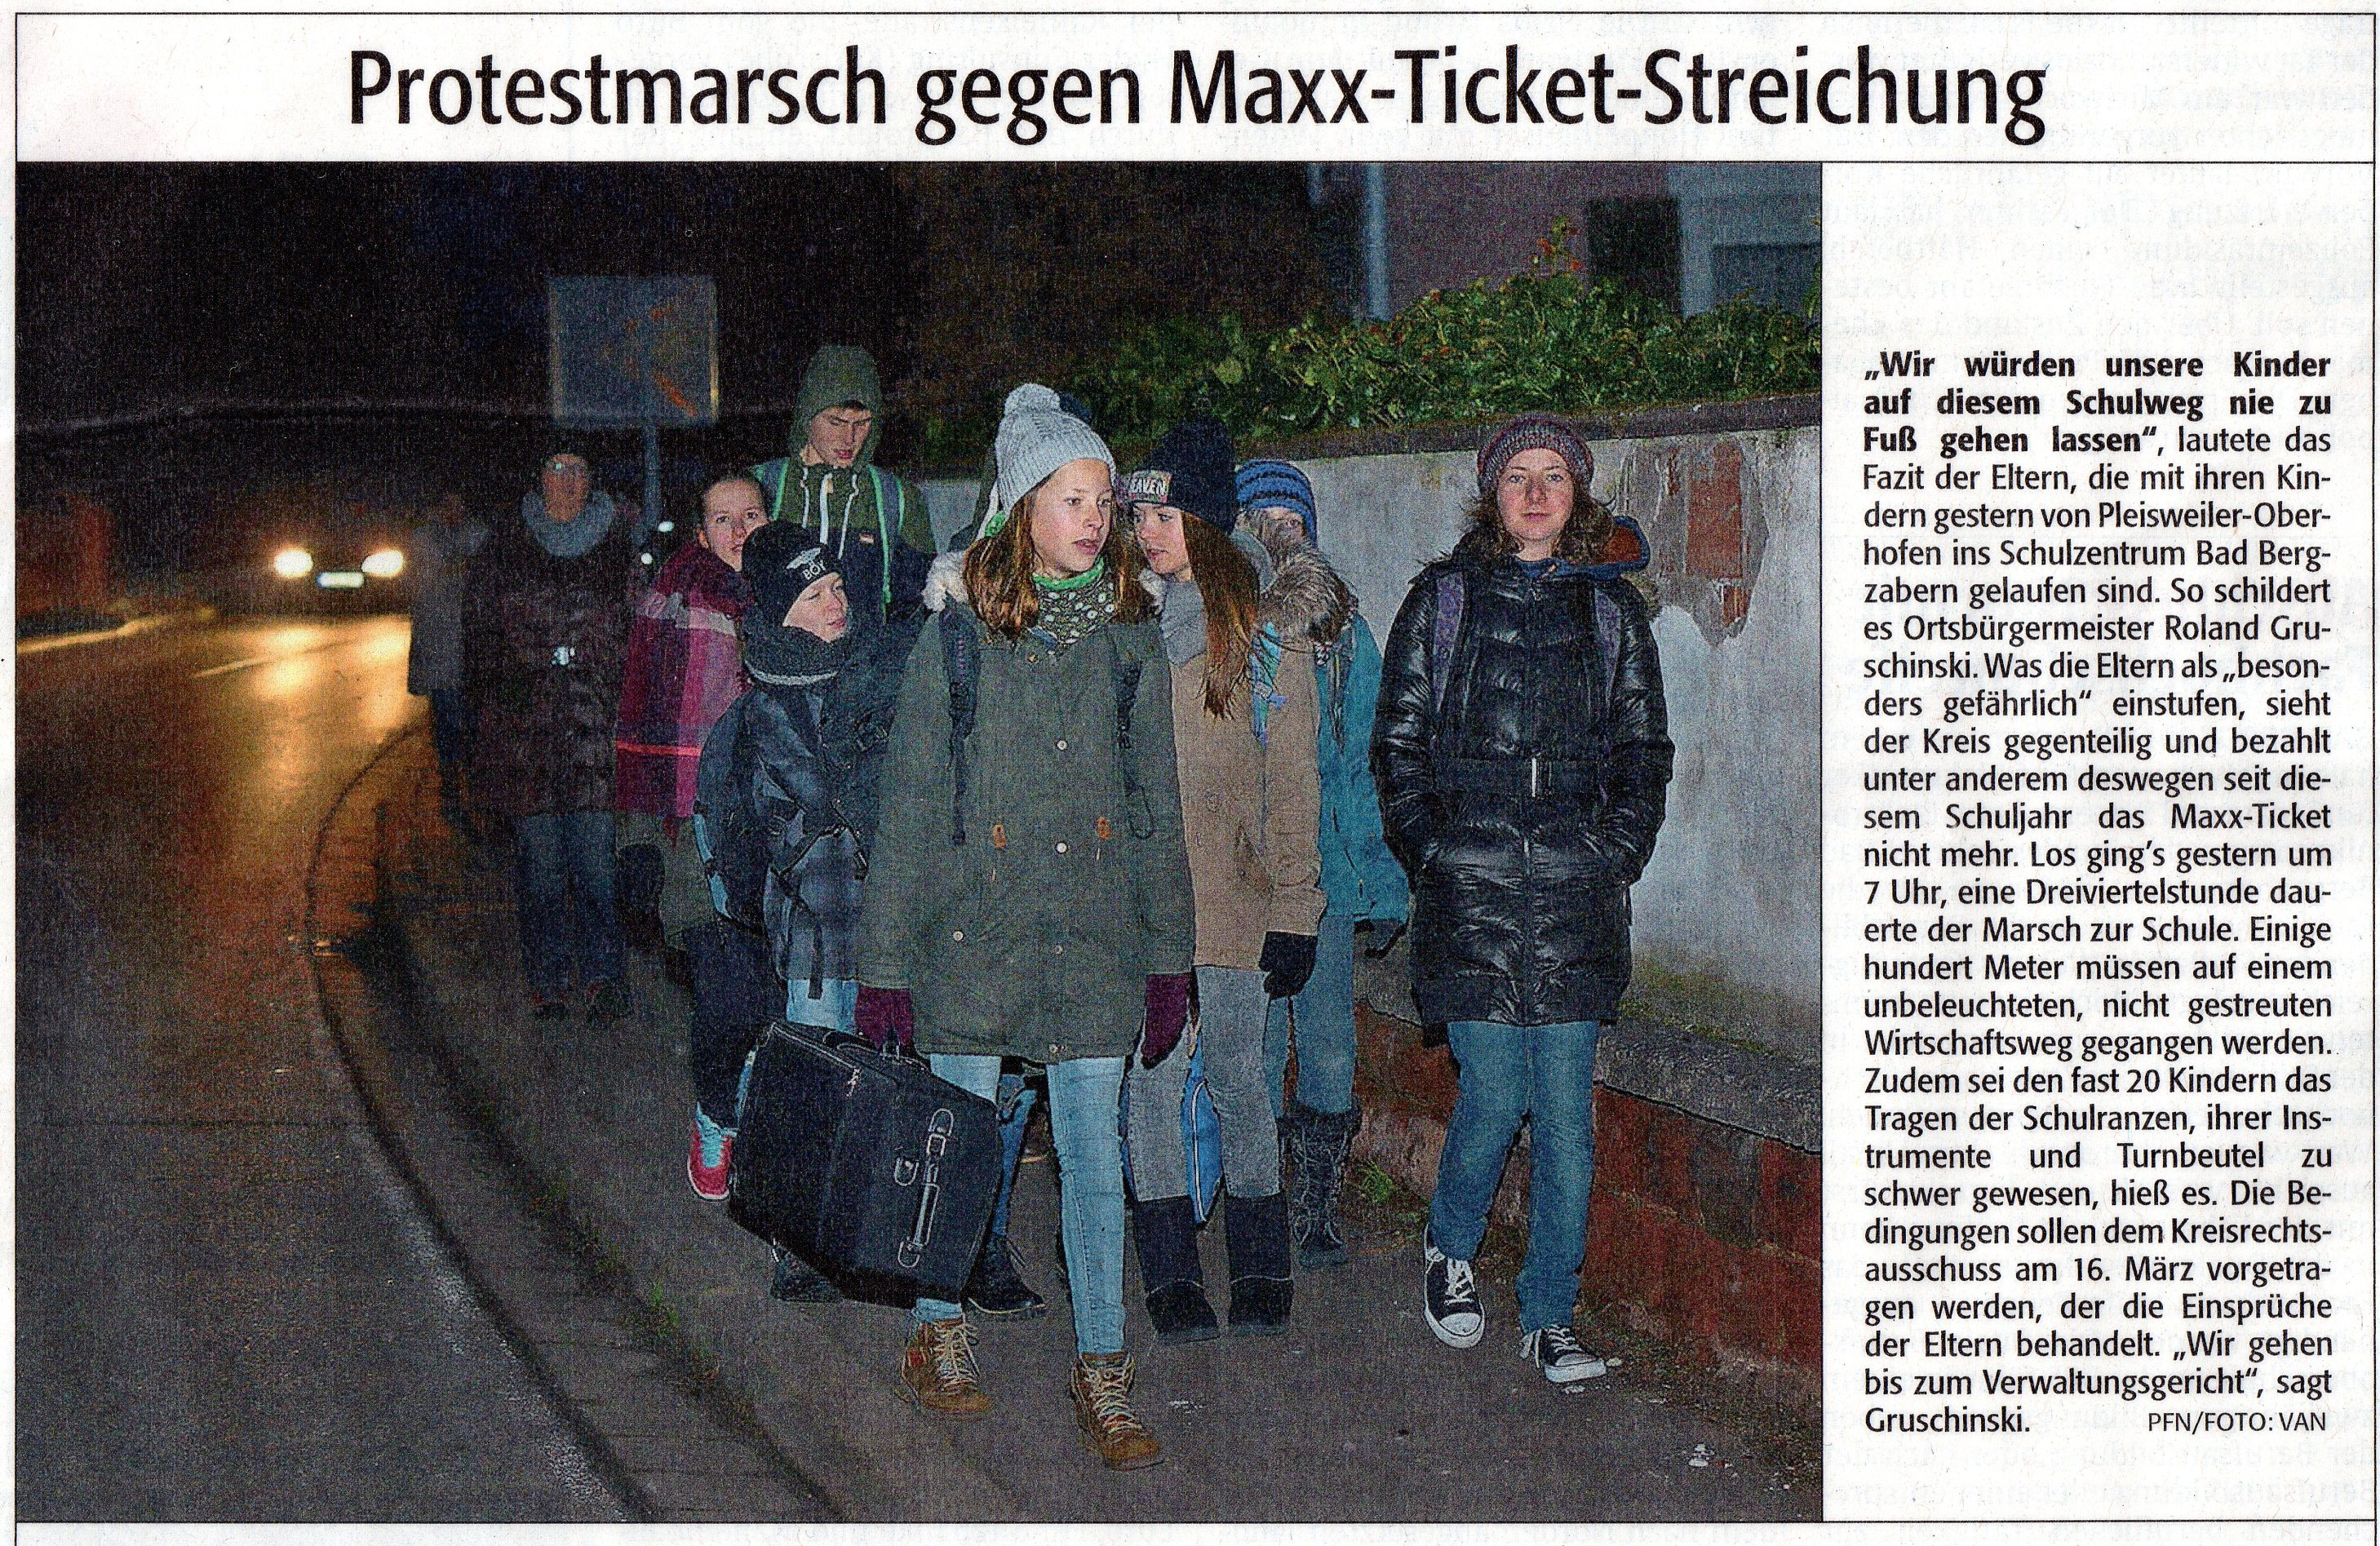 Maxx_Ticket_2015_02_06_002